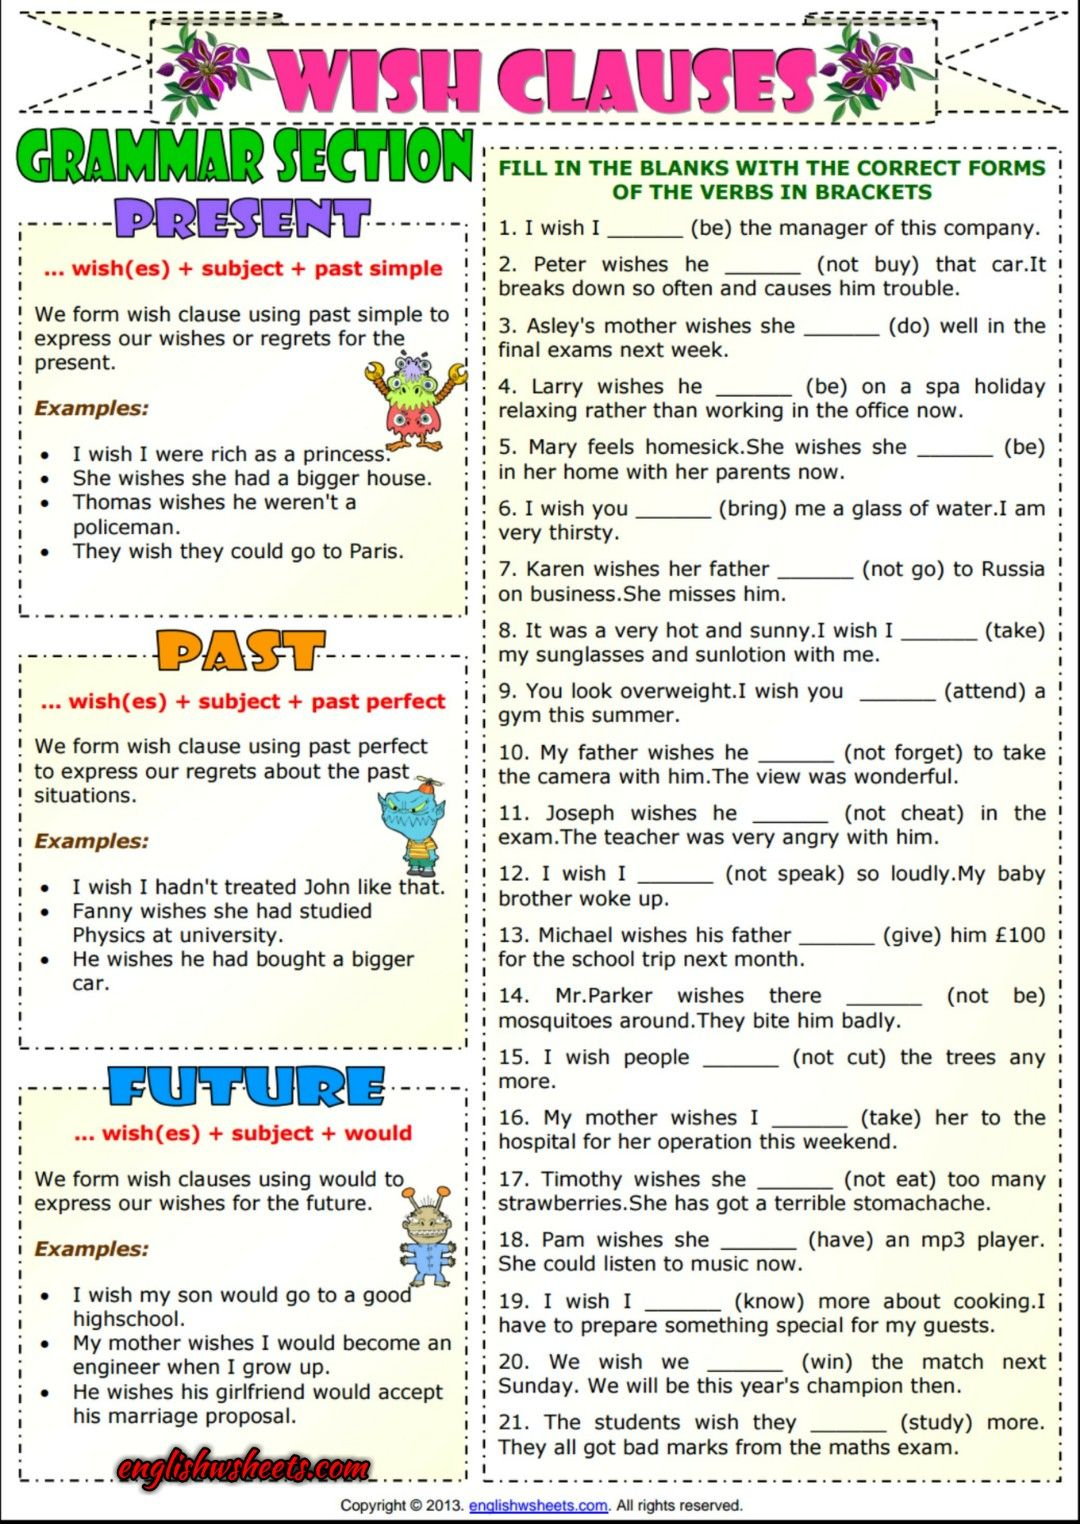 Appositive Worksheet Printable